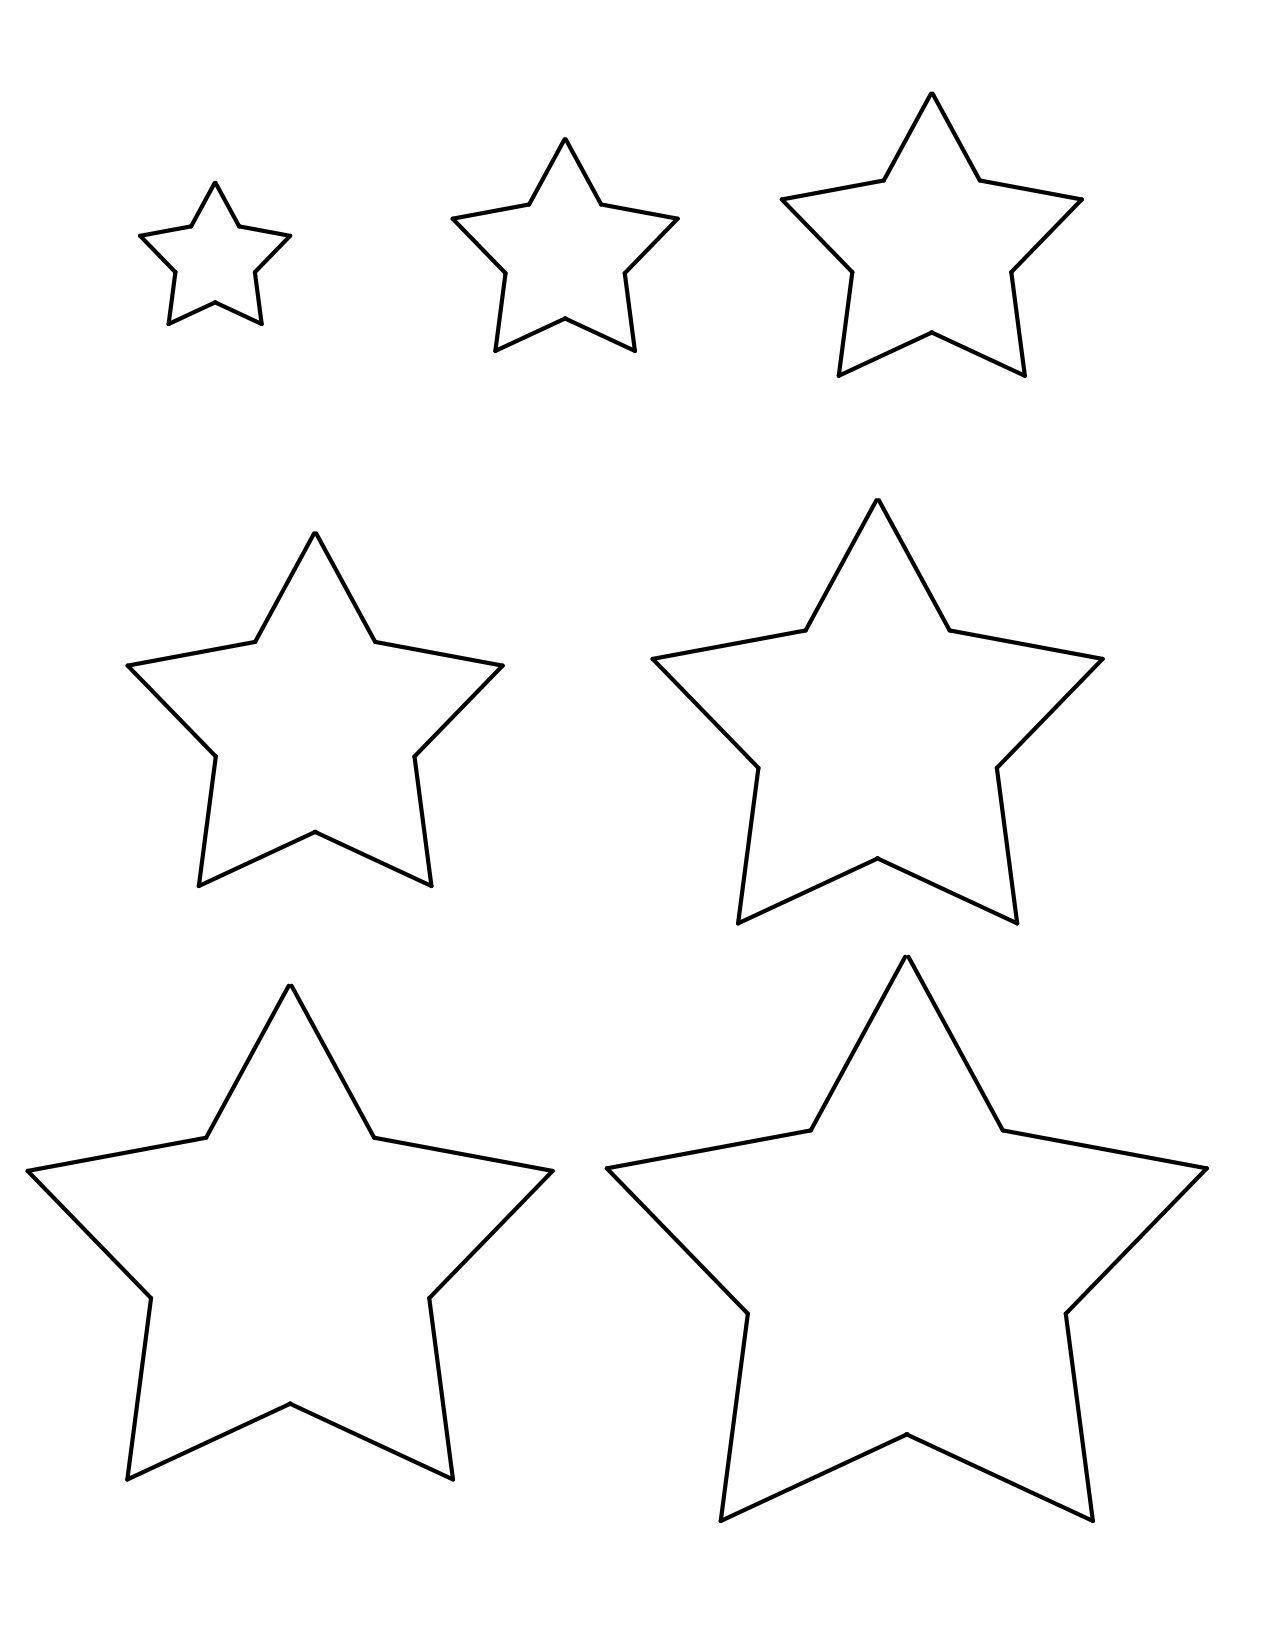 Star Templates 1 1 5 2 2 5 3 3 5 And 4 Inches Star Template Printable Star Template Stencil Patterns Templates